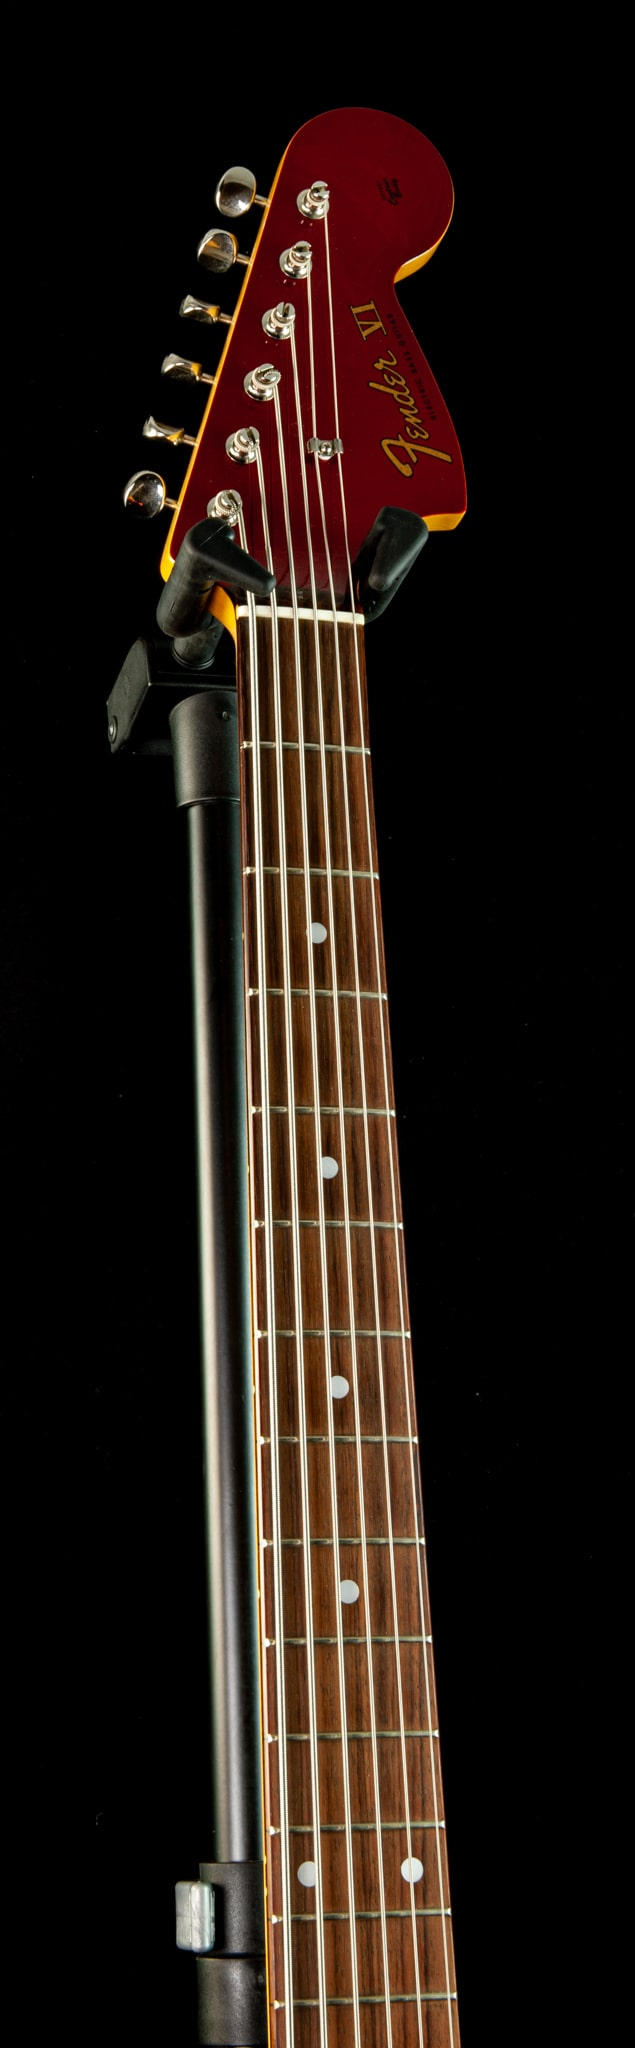 Fender - 2013 - MIJ Bass VI in Candy Apple Red